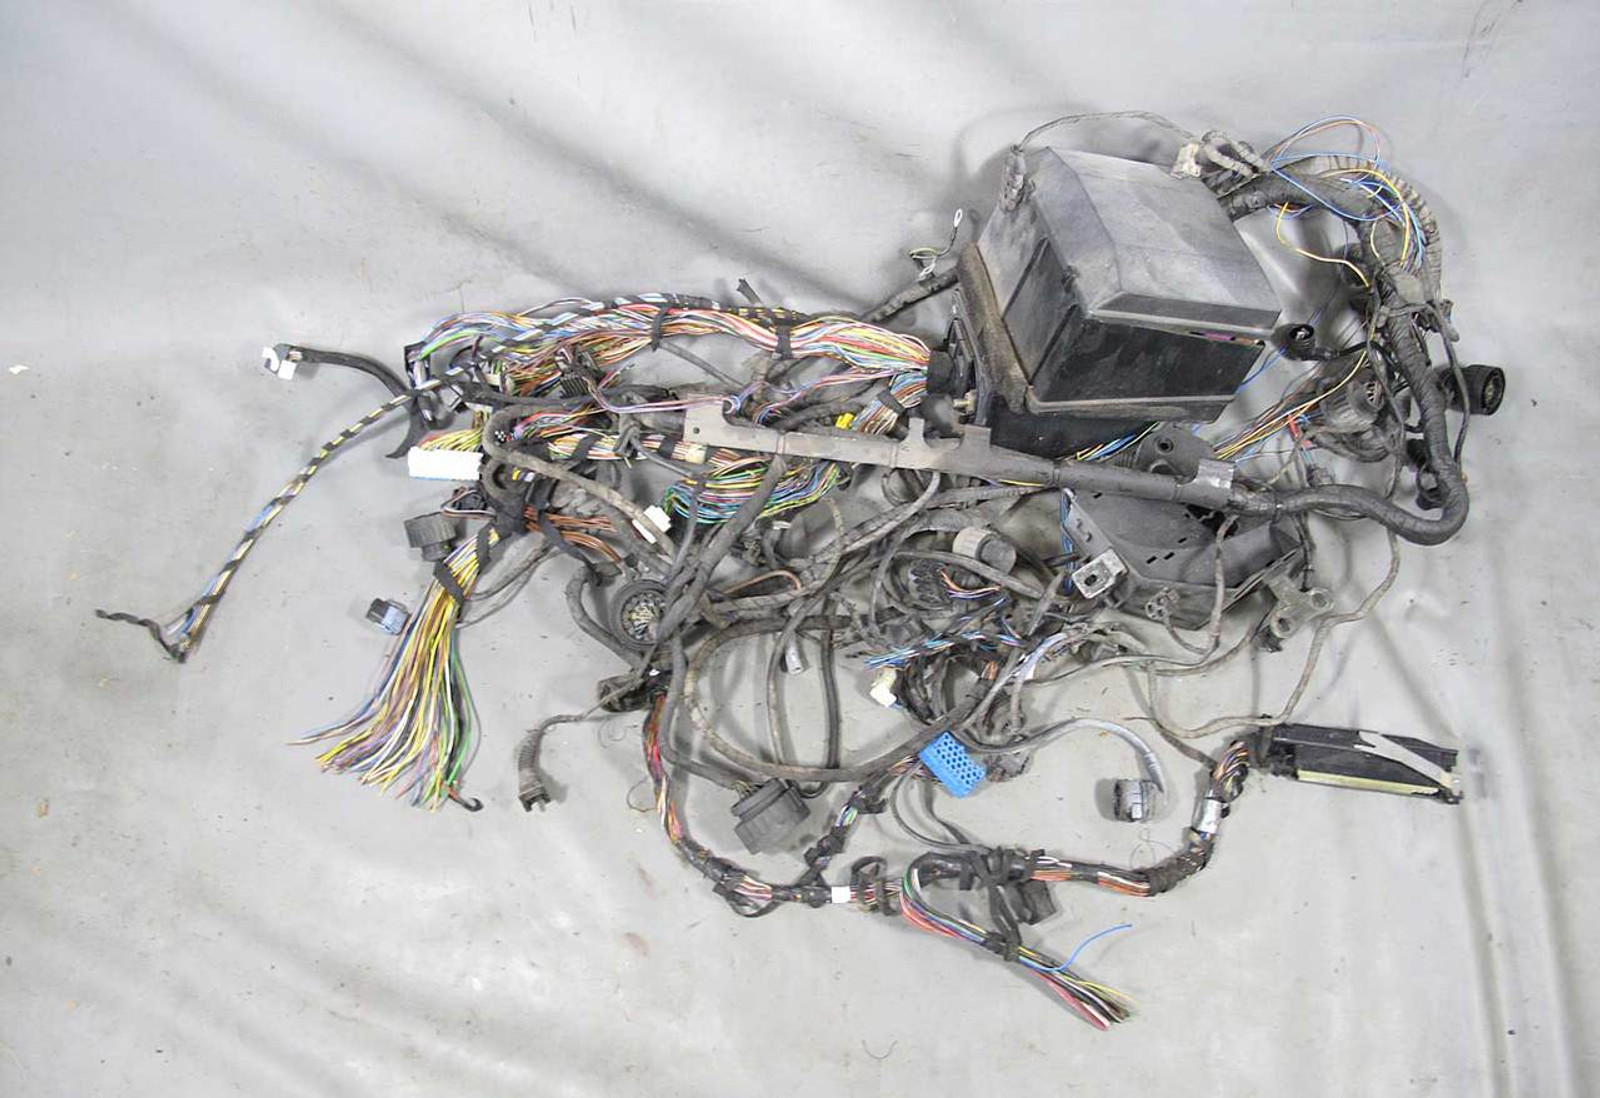 1994 1995 bmw e31 840i coupe body wiring harness w fuse box assembly used oem Bmw Fuse Box Harness